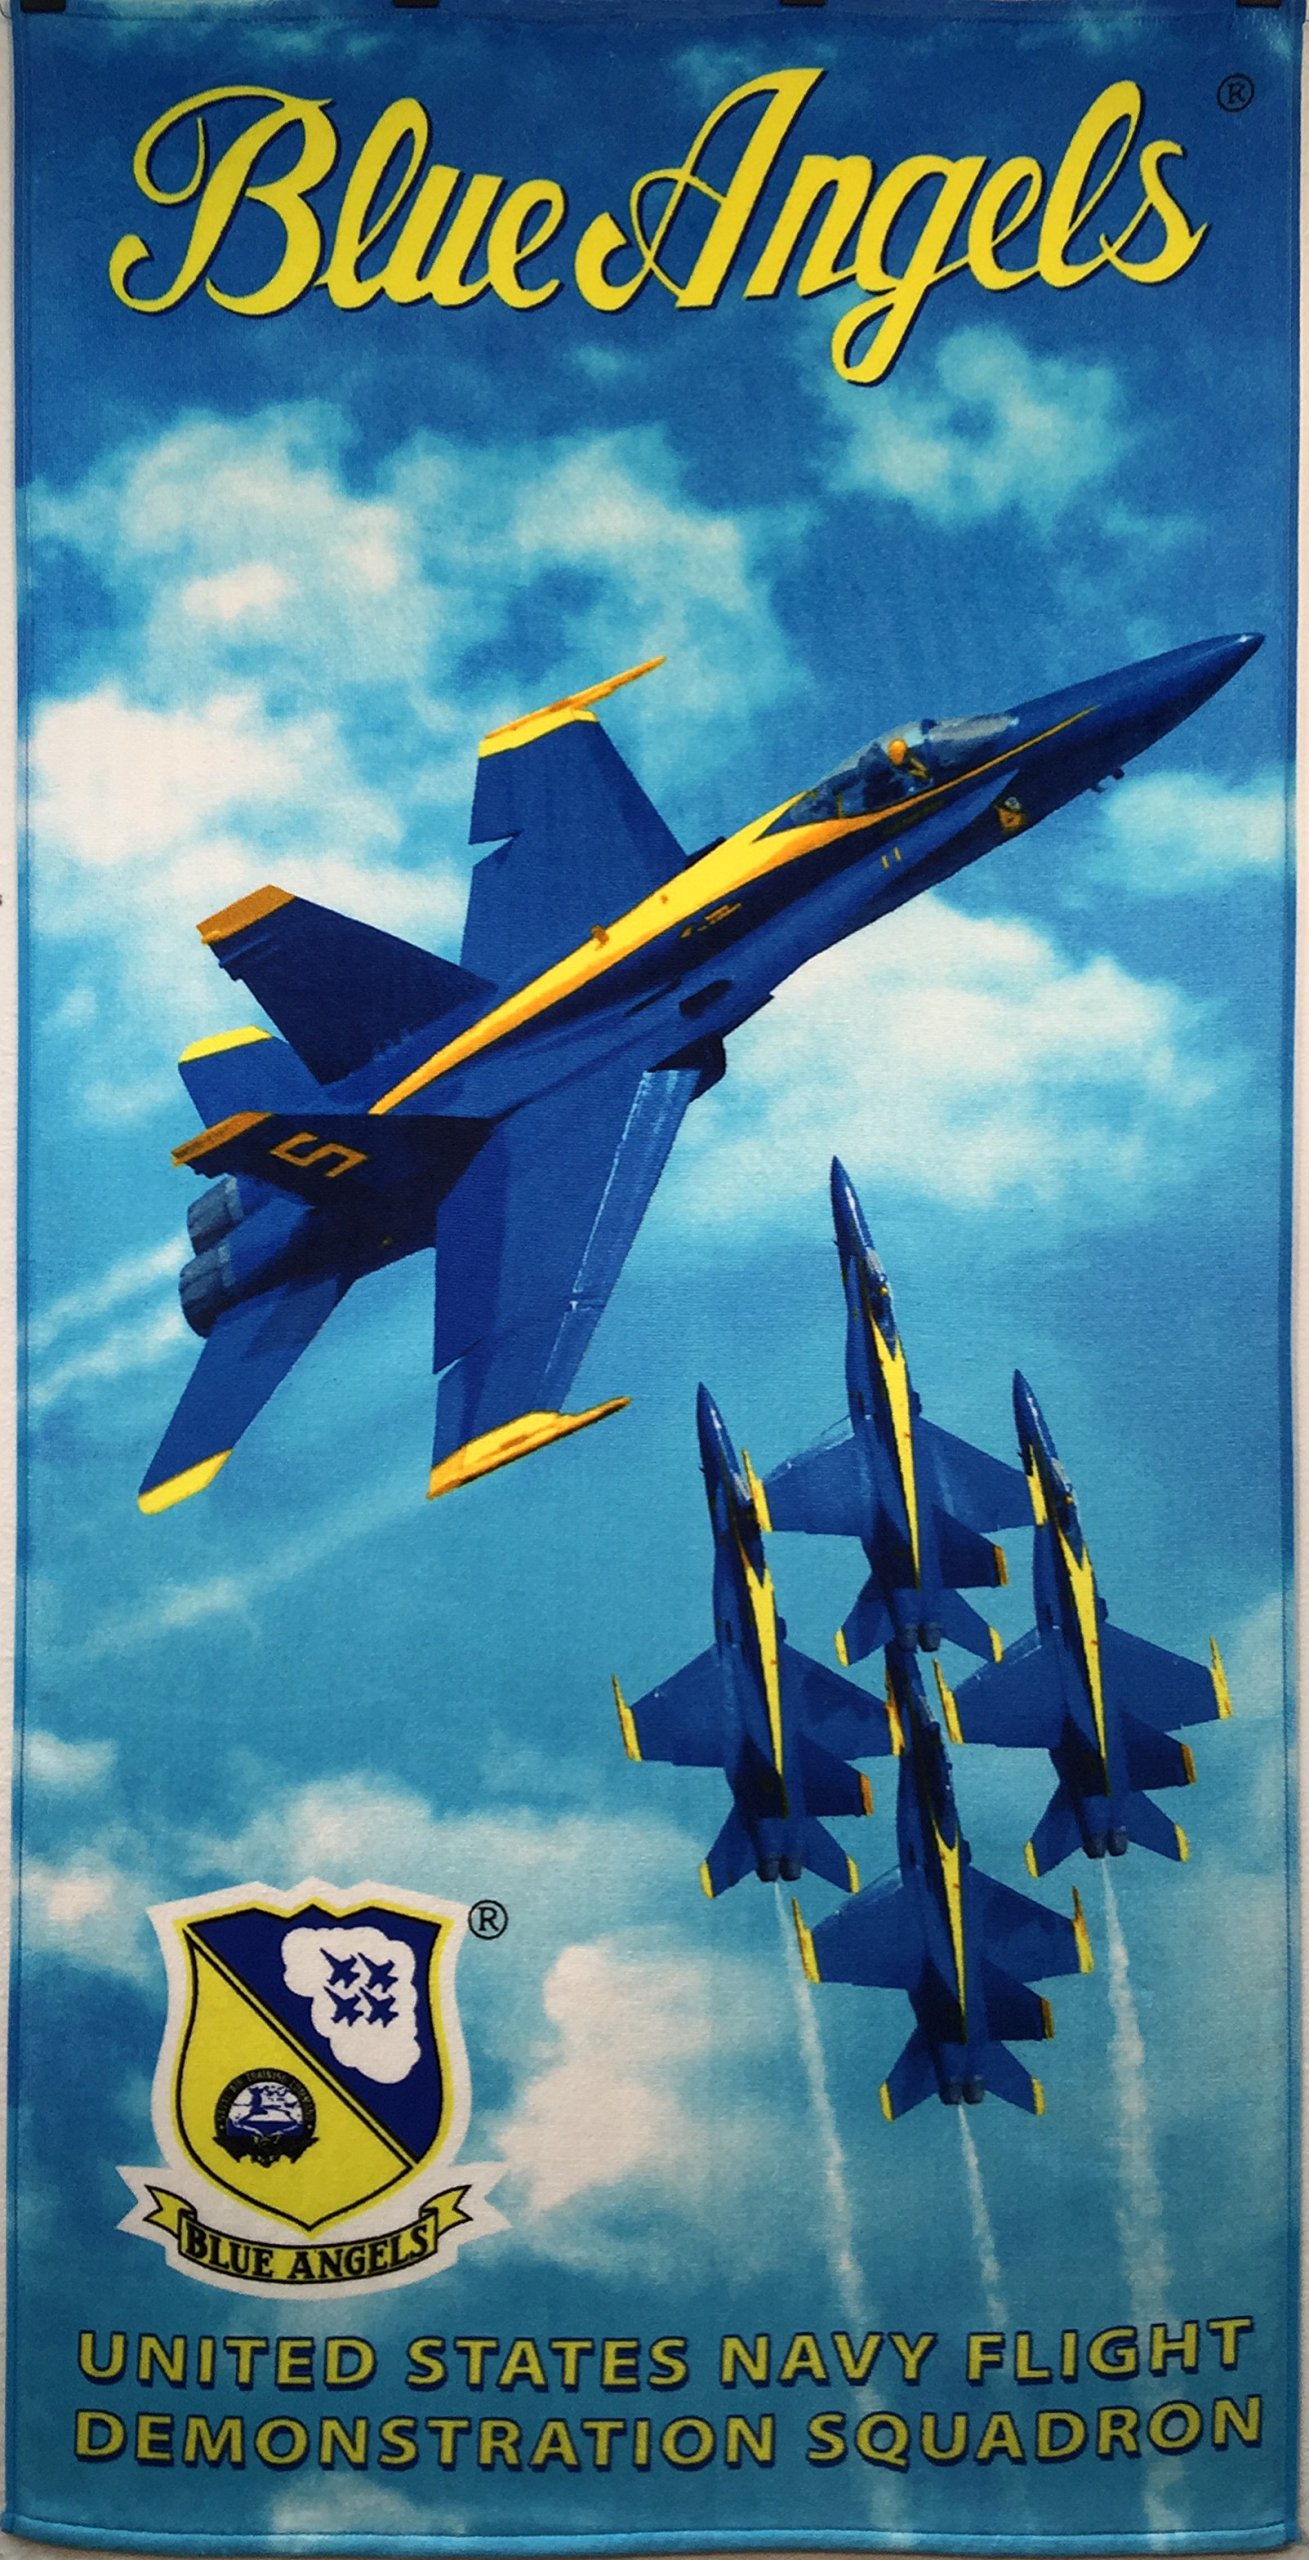 Blue Angels Licensed Brazilian Velour Beach Towel 30x60 inches